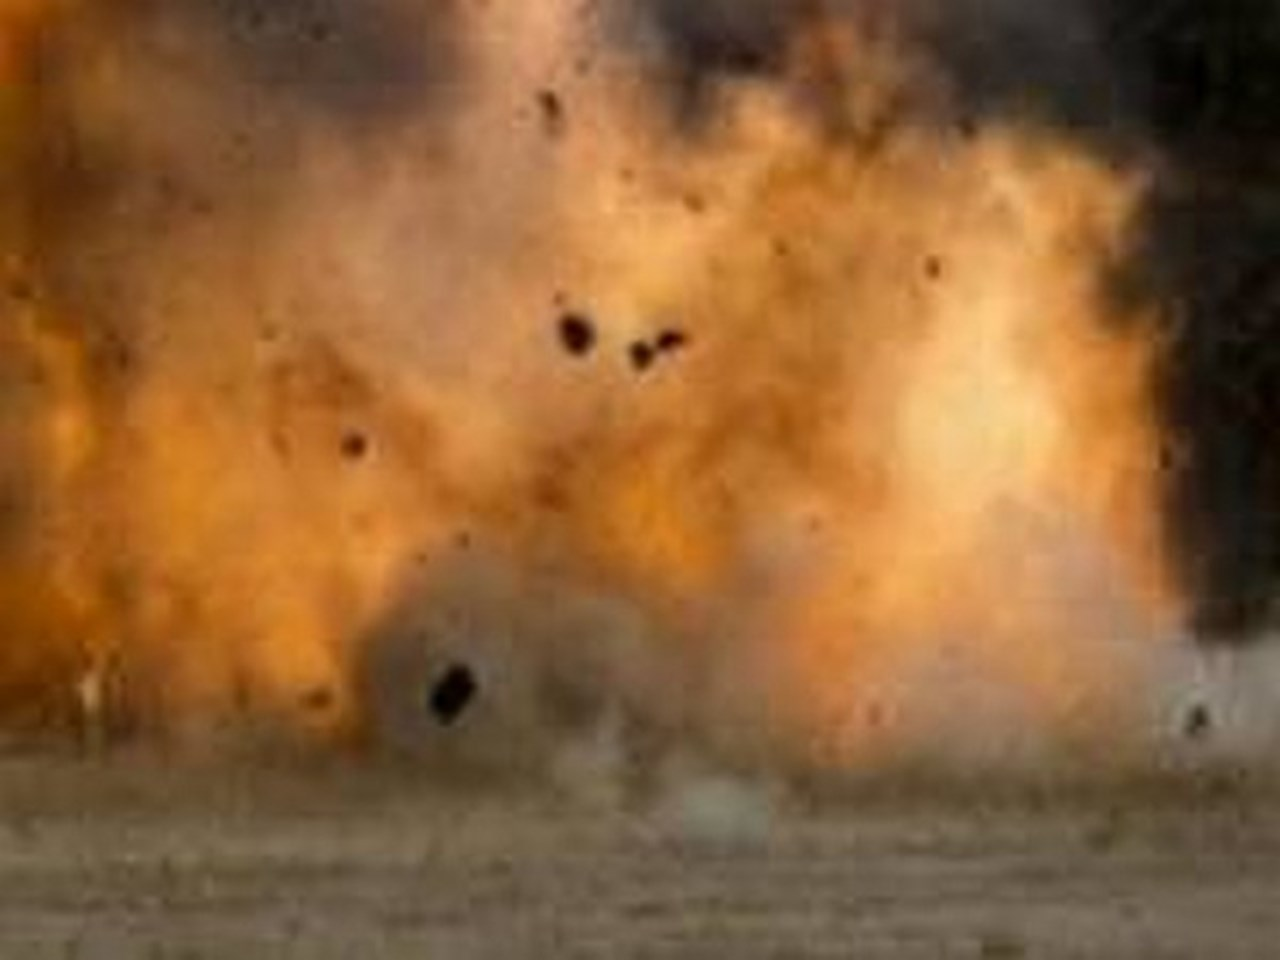 Explosions rock 2 Somalia cities as 4 killed in Baidoa